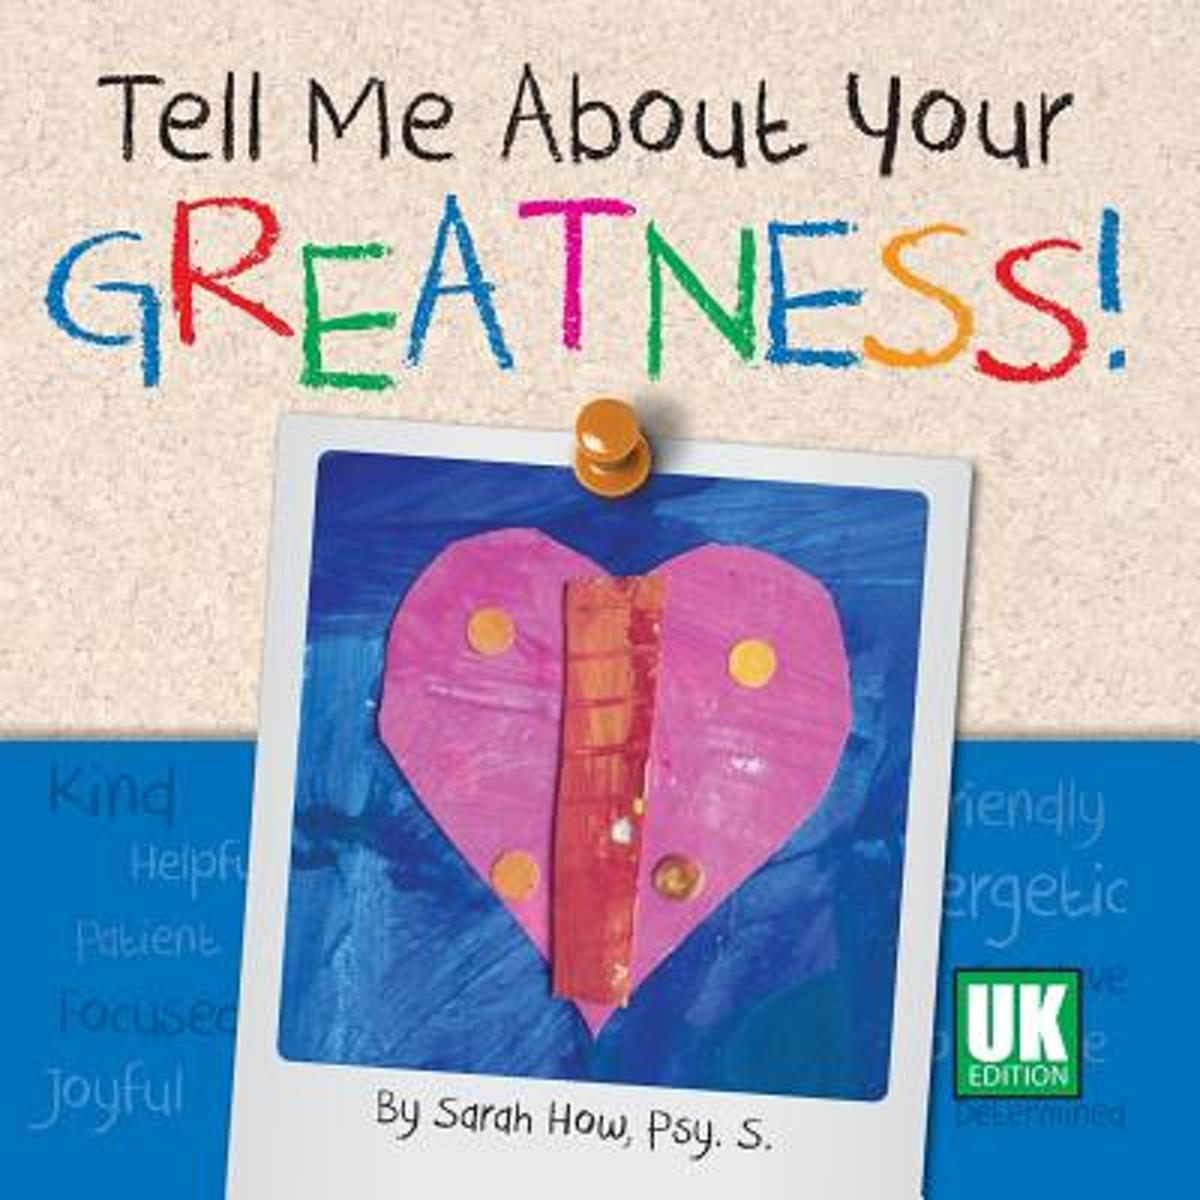 Tell Me About Your Greatness! UK Edition